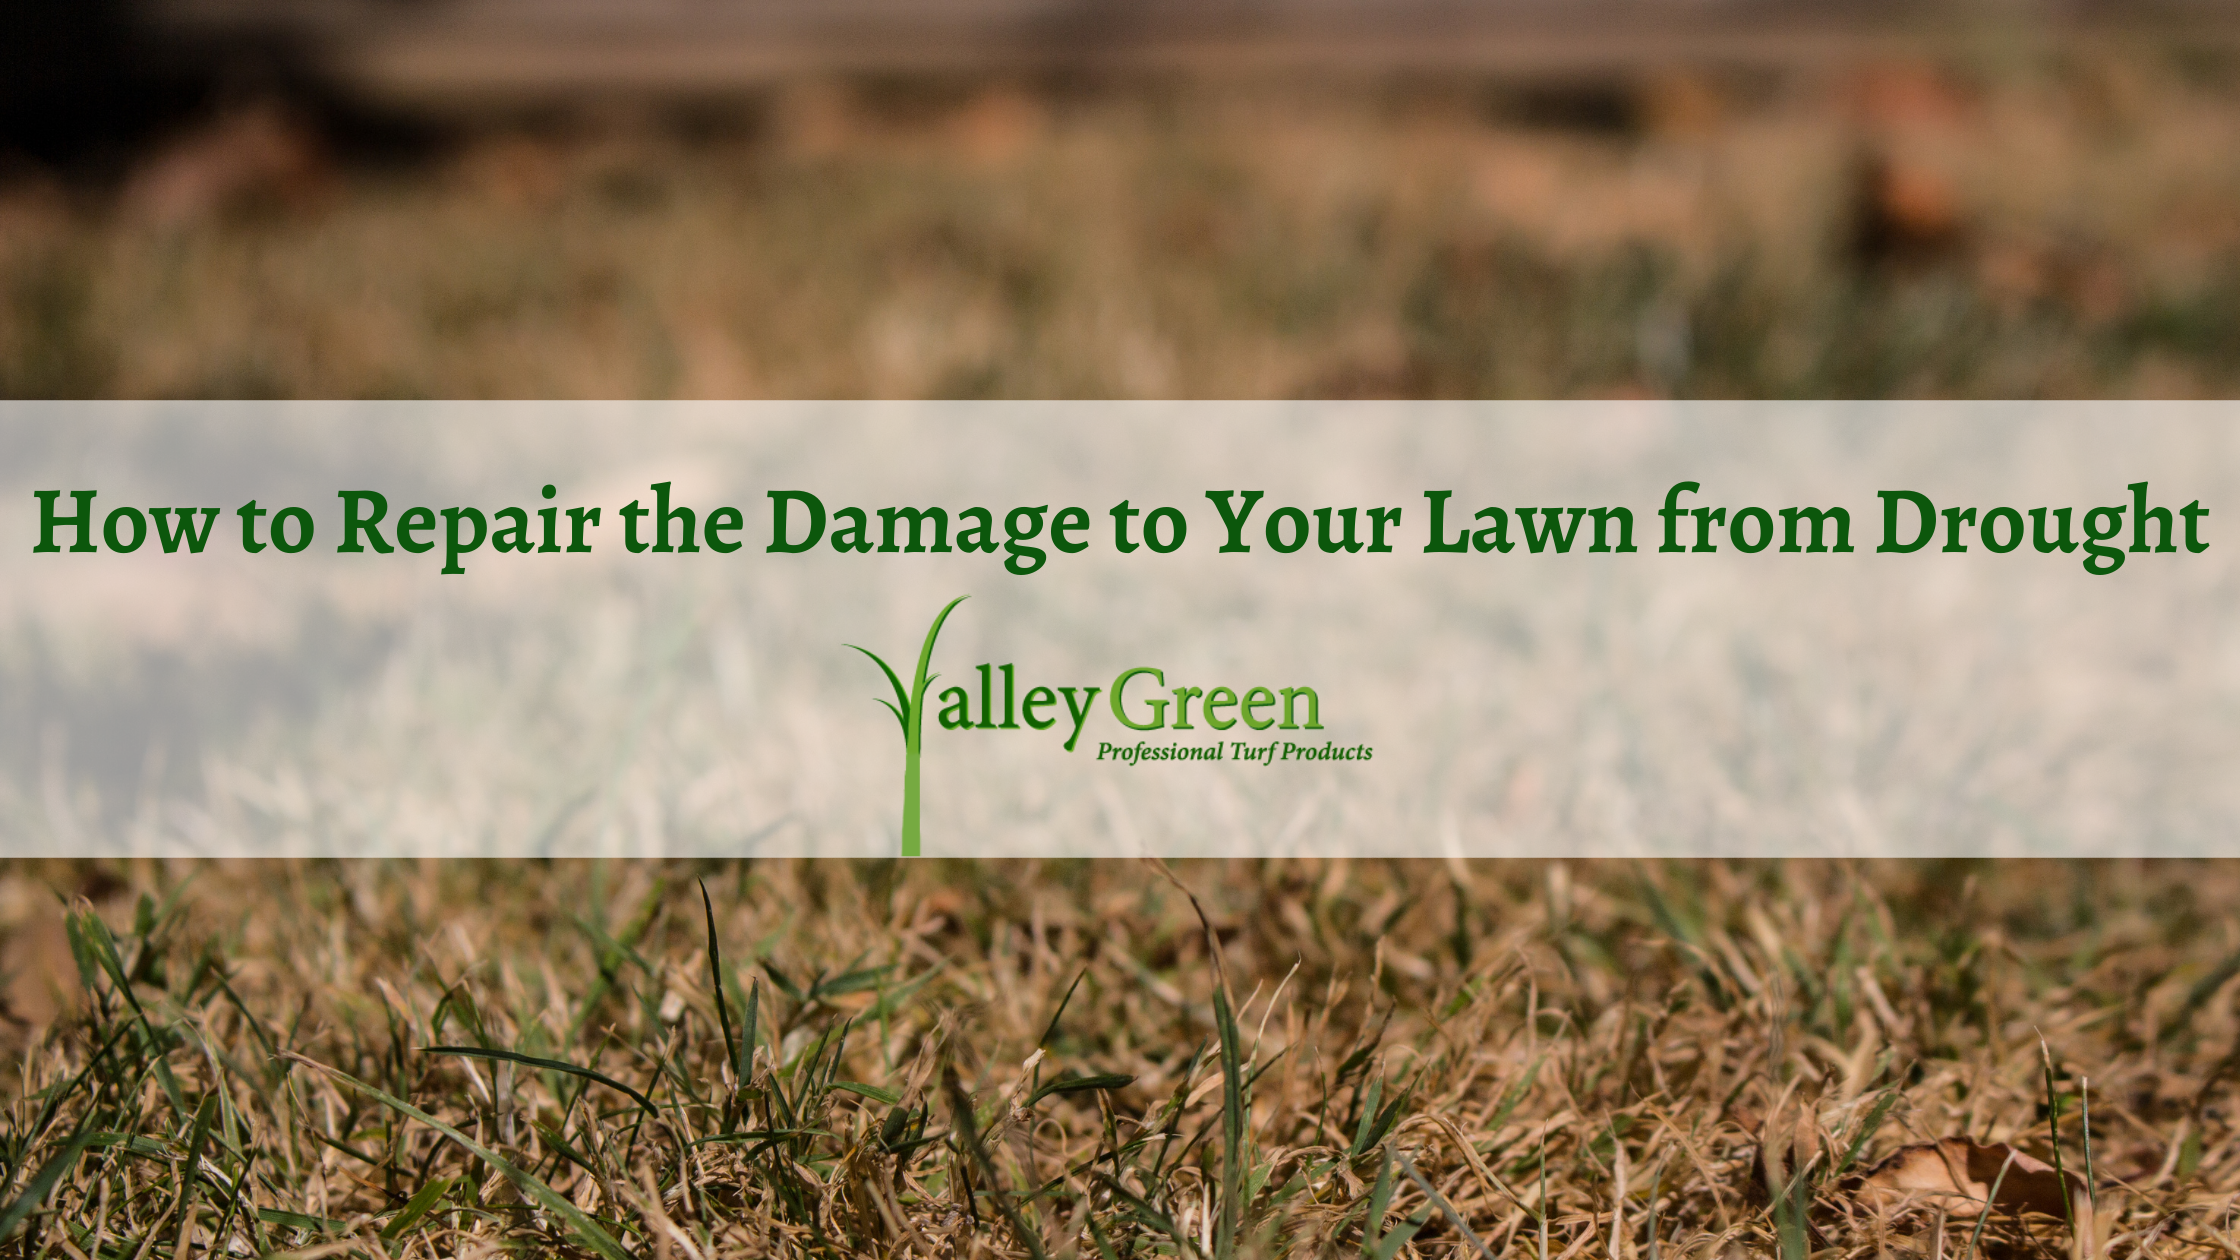 How to Repair the Damage to Your Lawn from Drought